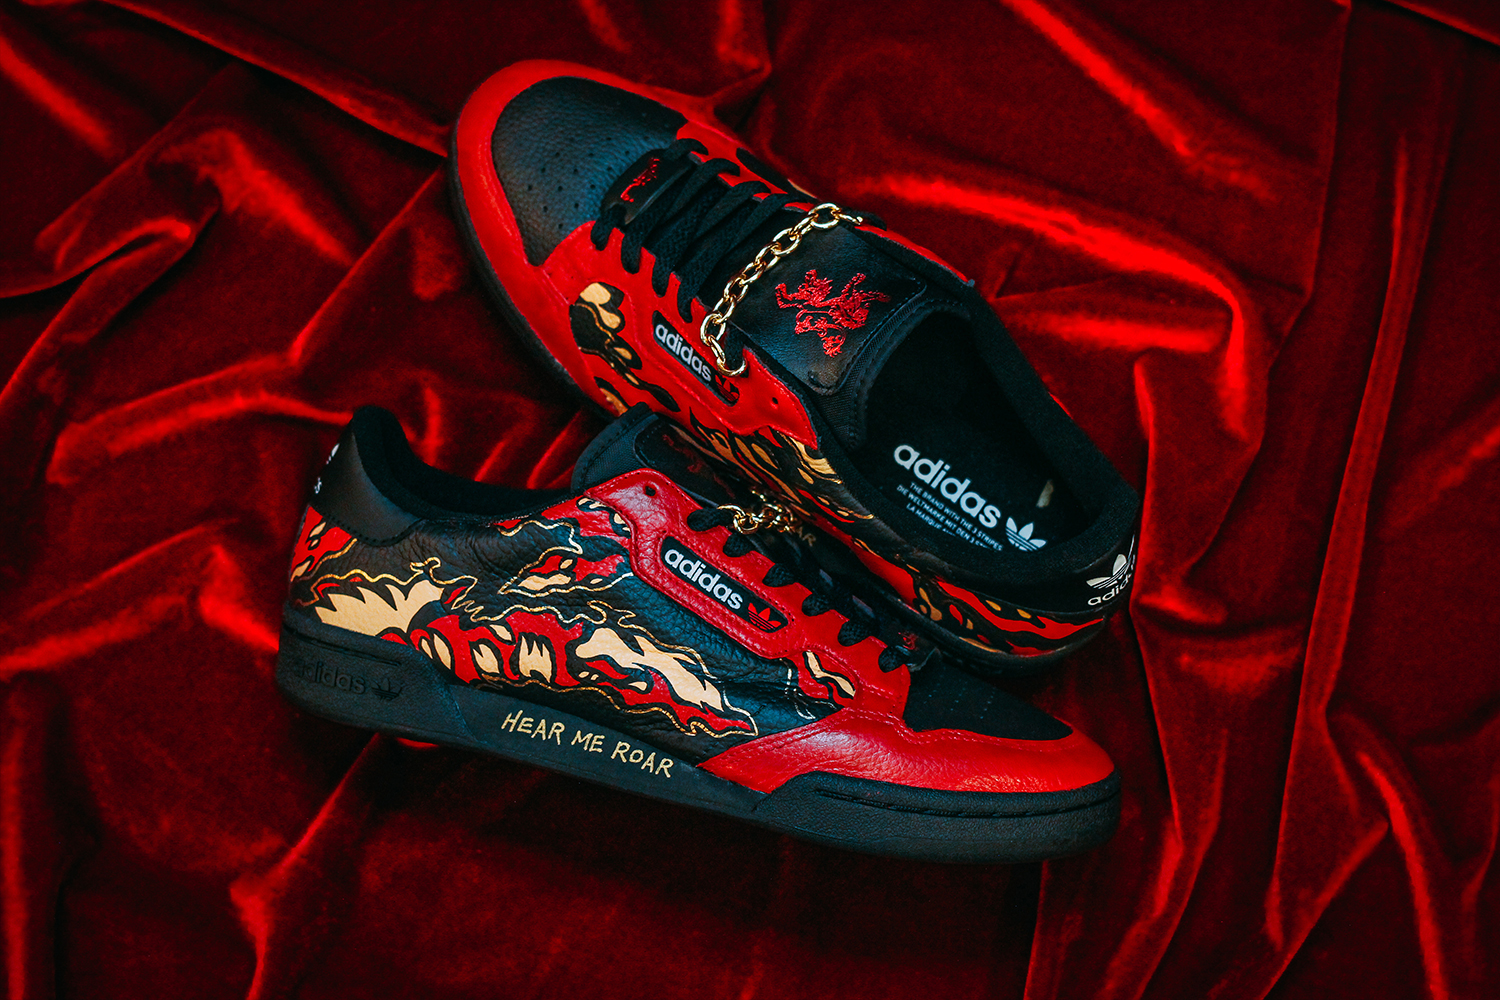 c59a1fa2c These HBO Asia x Adidas customs for Game of Thrones are super slick ...